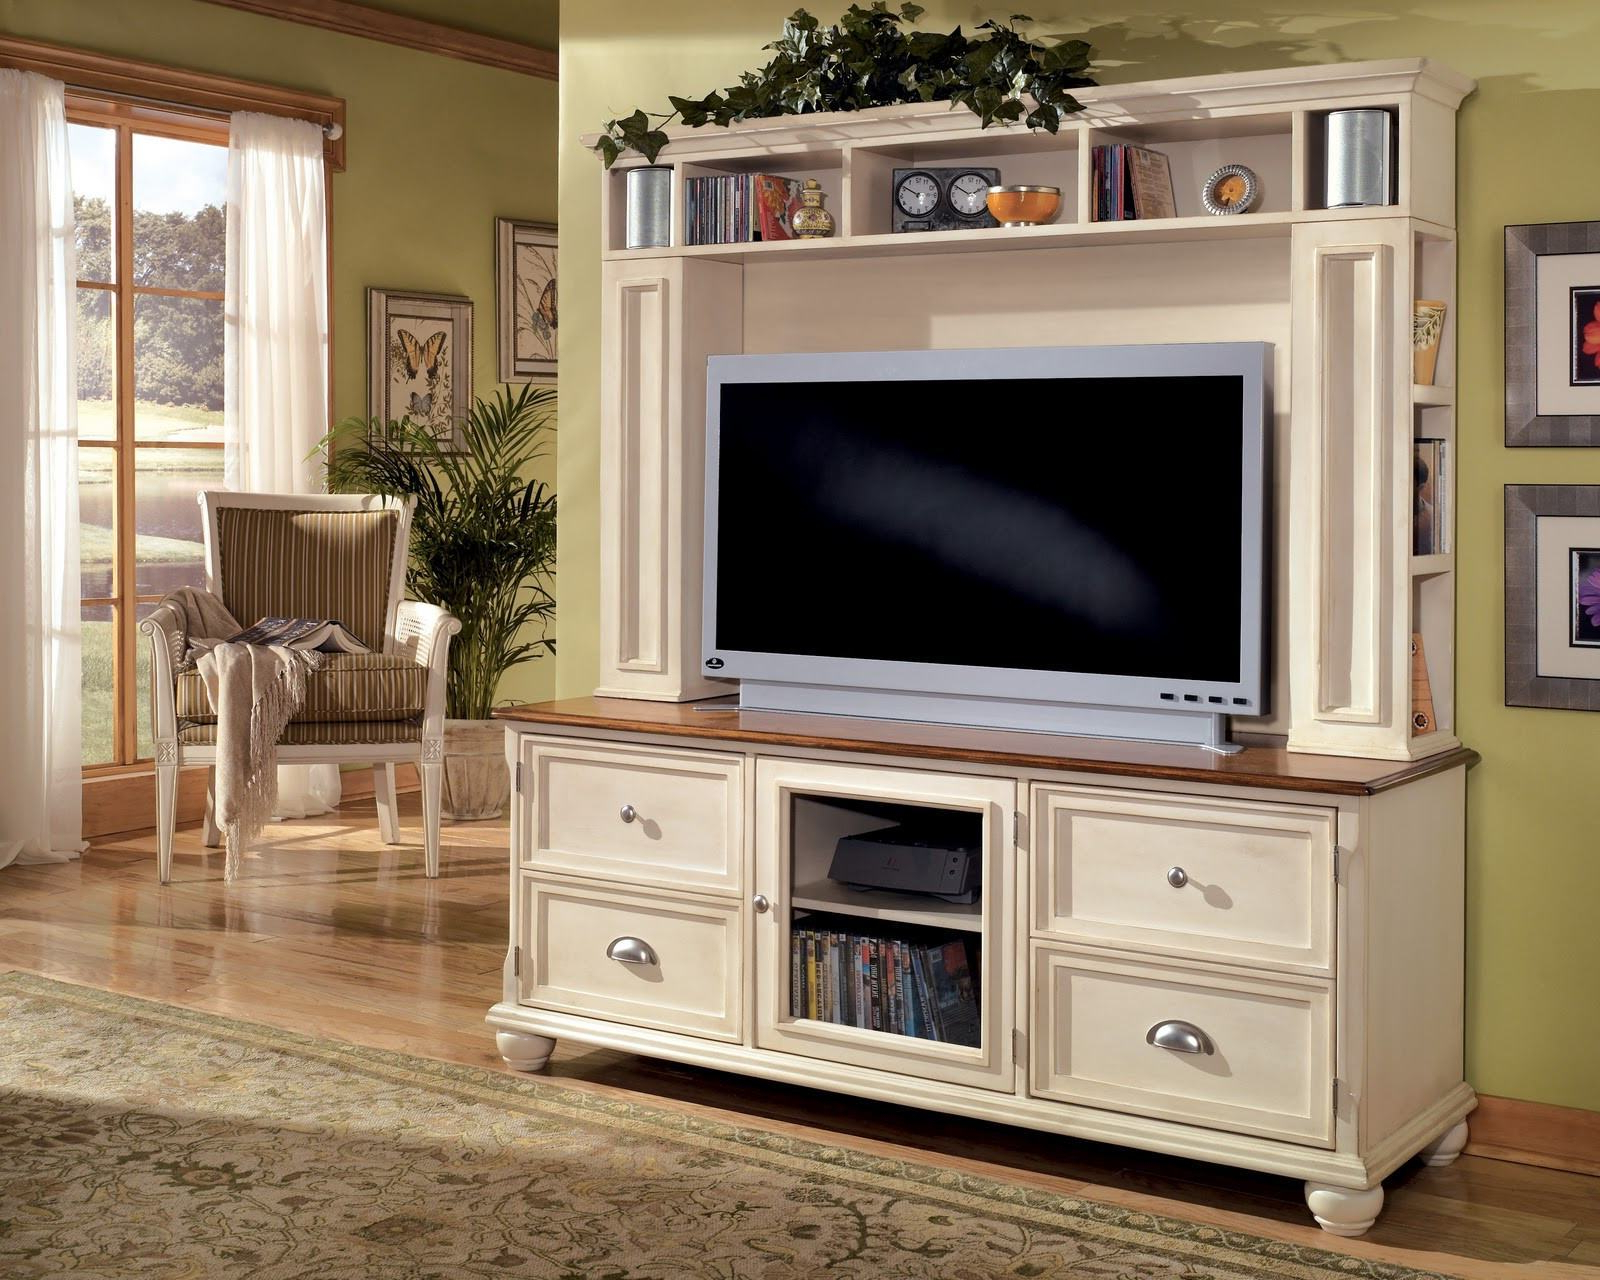 Newest 12 Newest French Country Tv Console For Your New Living Room Regarding French Country Tv Stands (View 13 of 20)